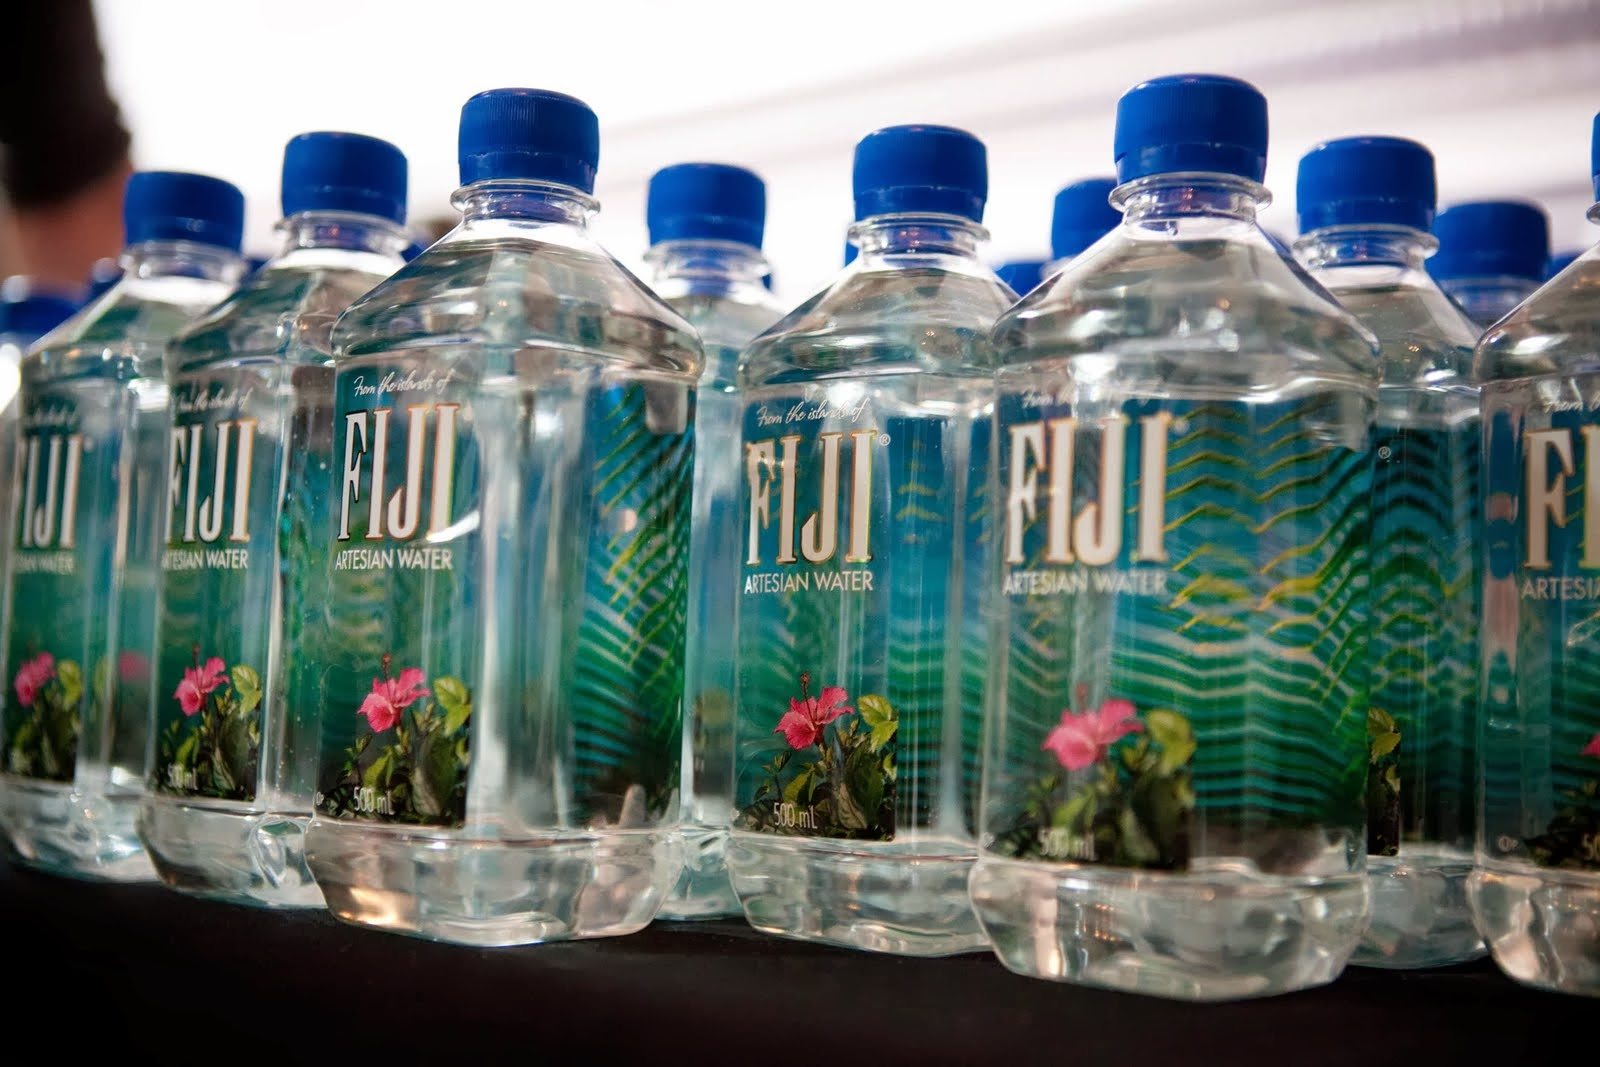 fiji water and corporate social responsibility essay Nova school of business and economics 2nd semester 2011/2012 marta andre  lopes nº10265 international management – 4th case study summary – fiji.